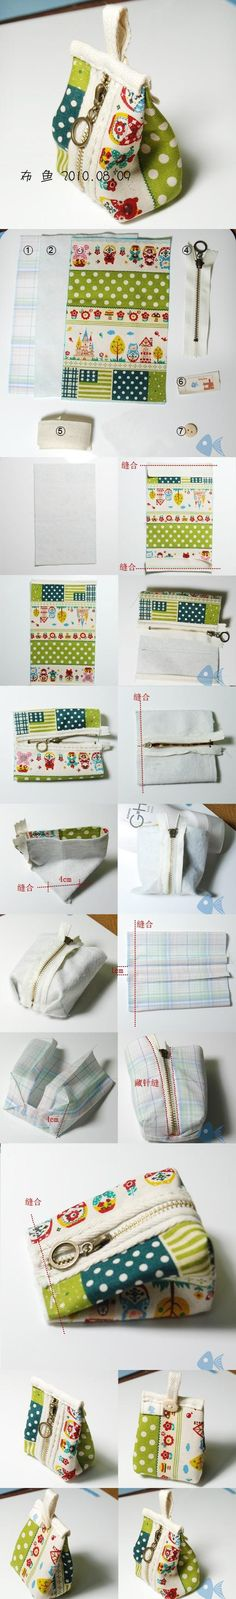 DIY Small Handbag DIY Small Handbag